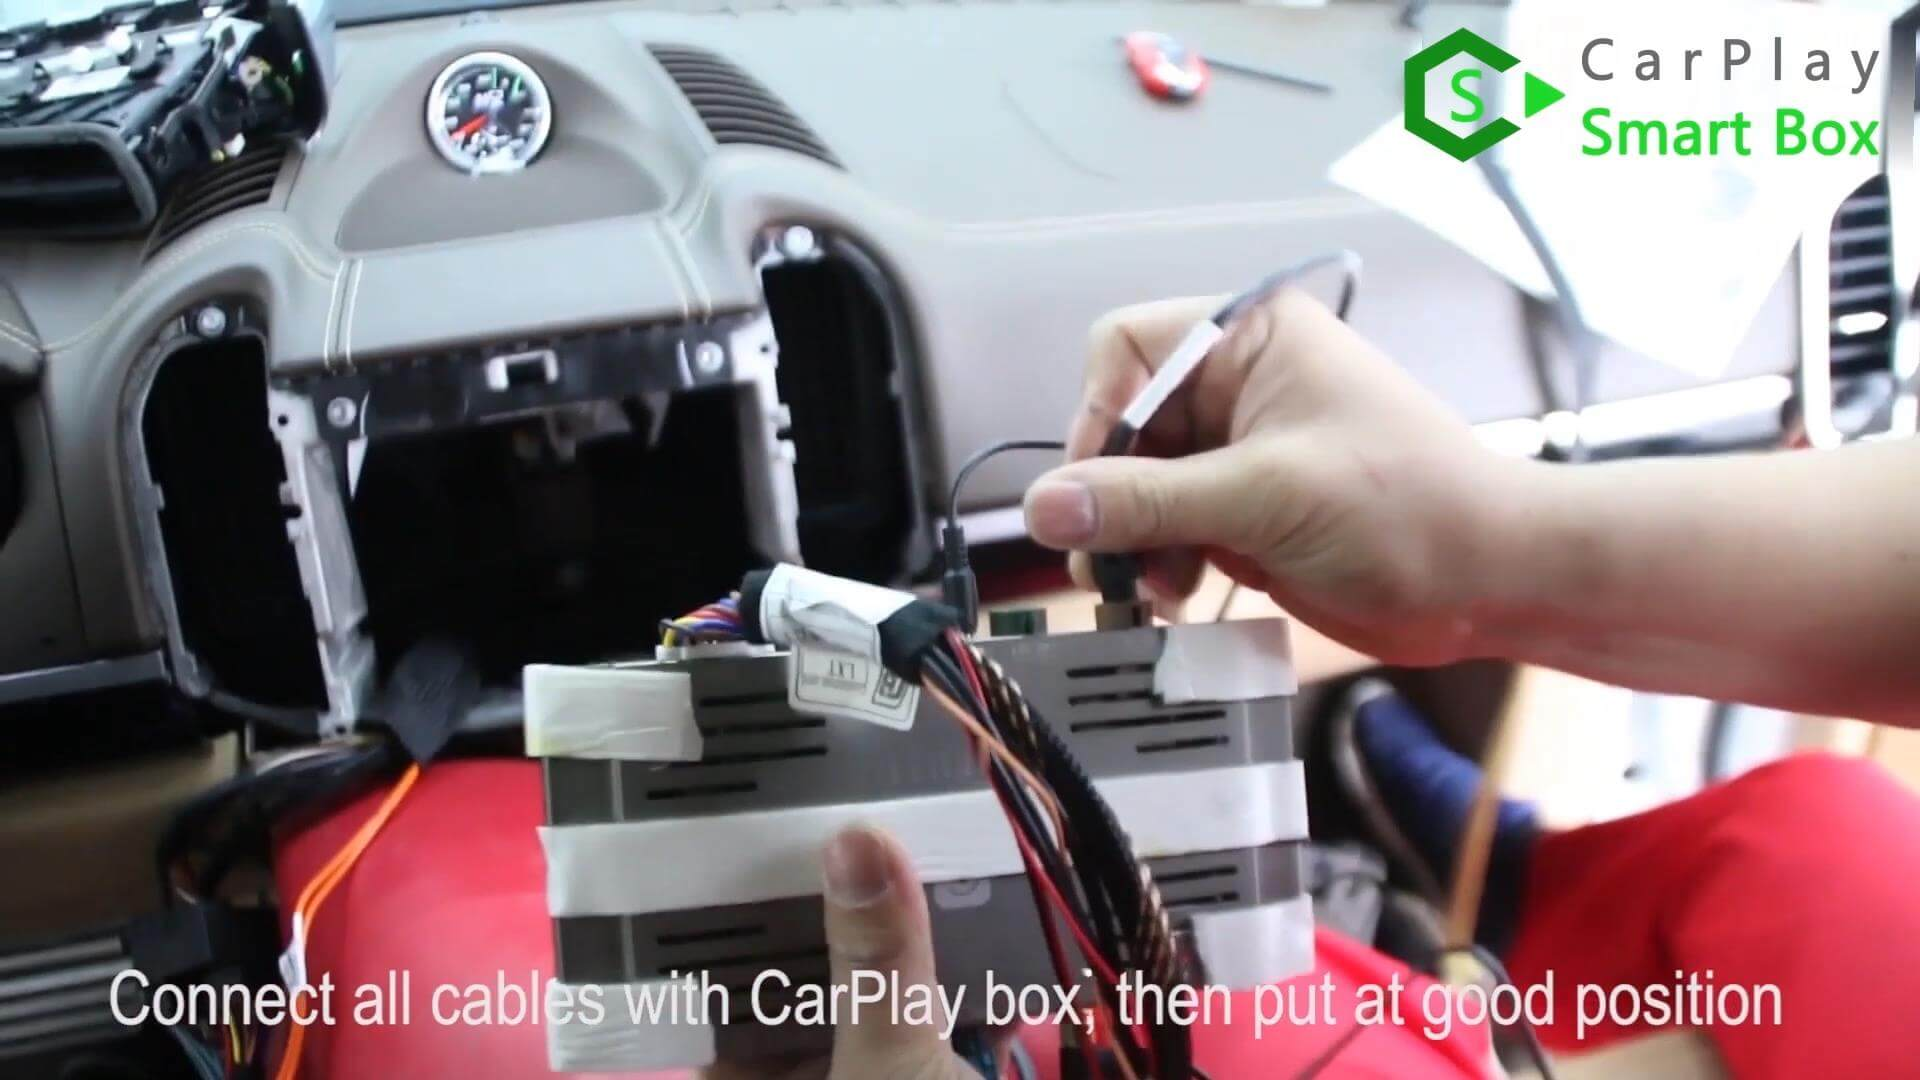 15. Connect all cables with CarPlay box, then put at good position -  Step by Step Retrofit Porsche Cayenne PCM3.1 WIFI Wireless Apple CarPlay - CarPlay Smart Box